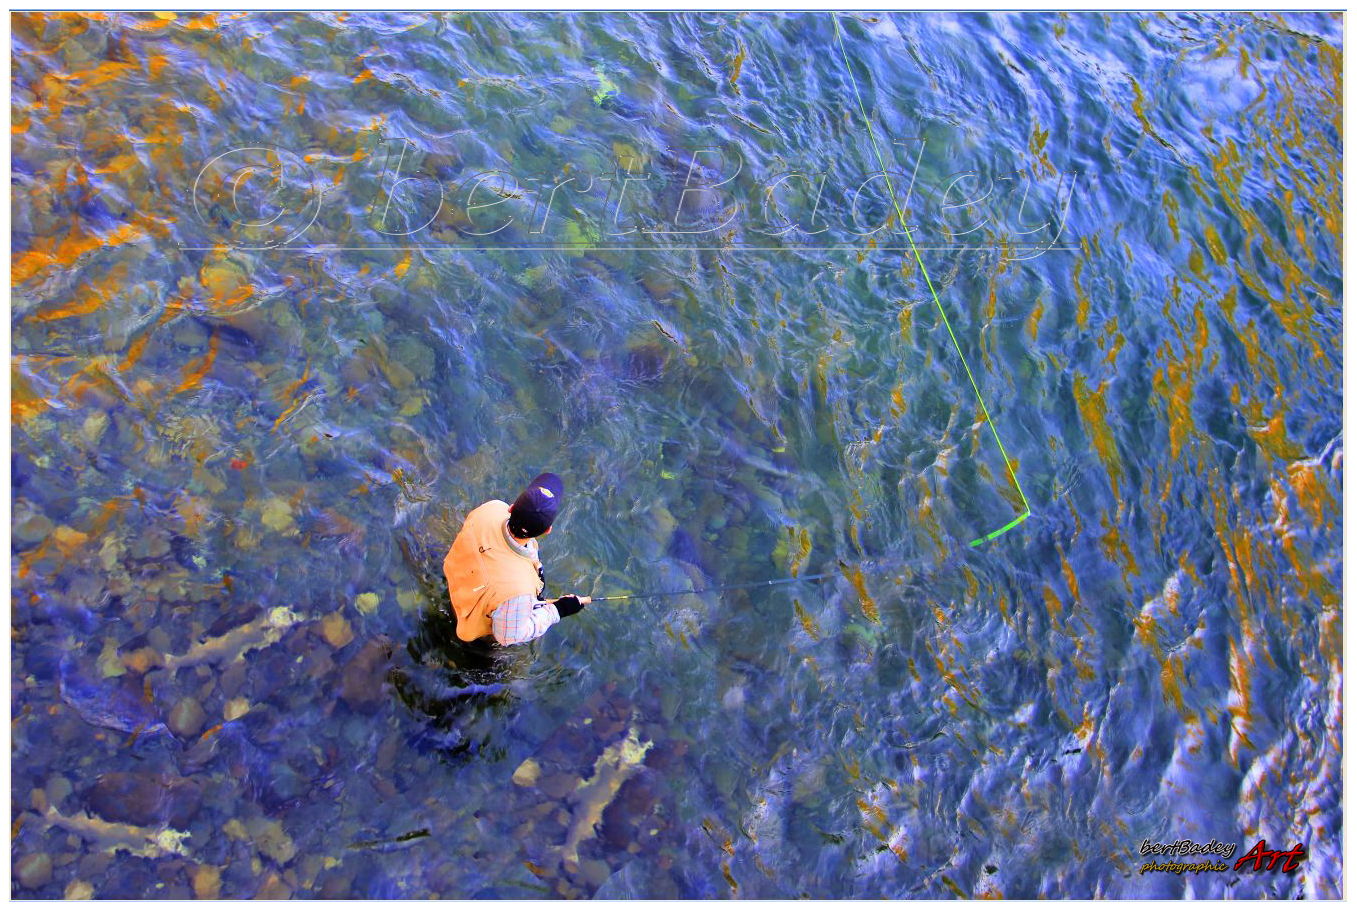 Blue and Gold Salmon on the Fly, Courtenay c